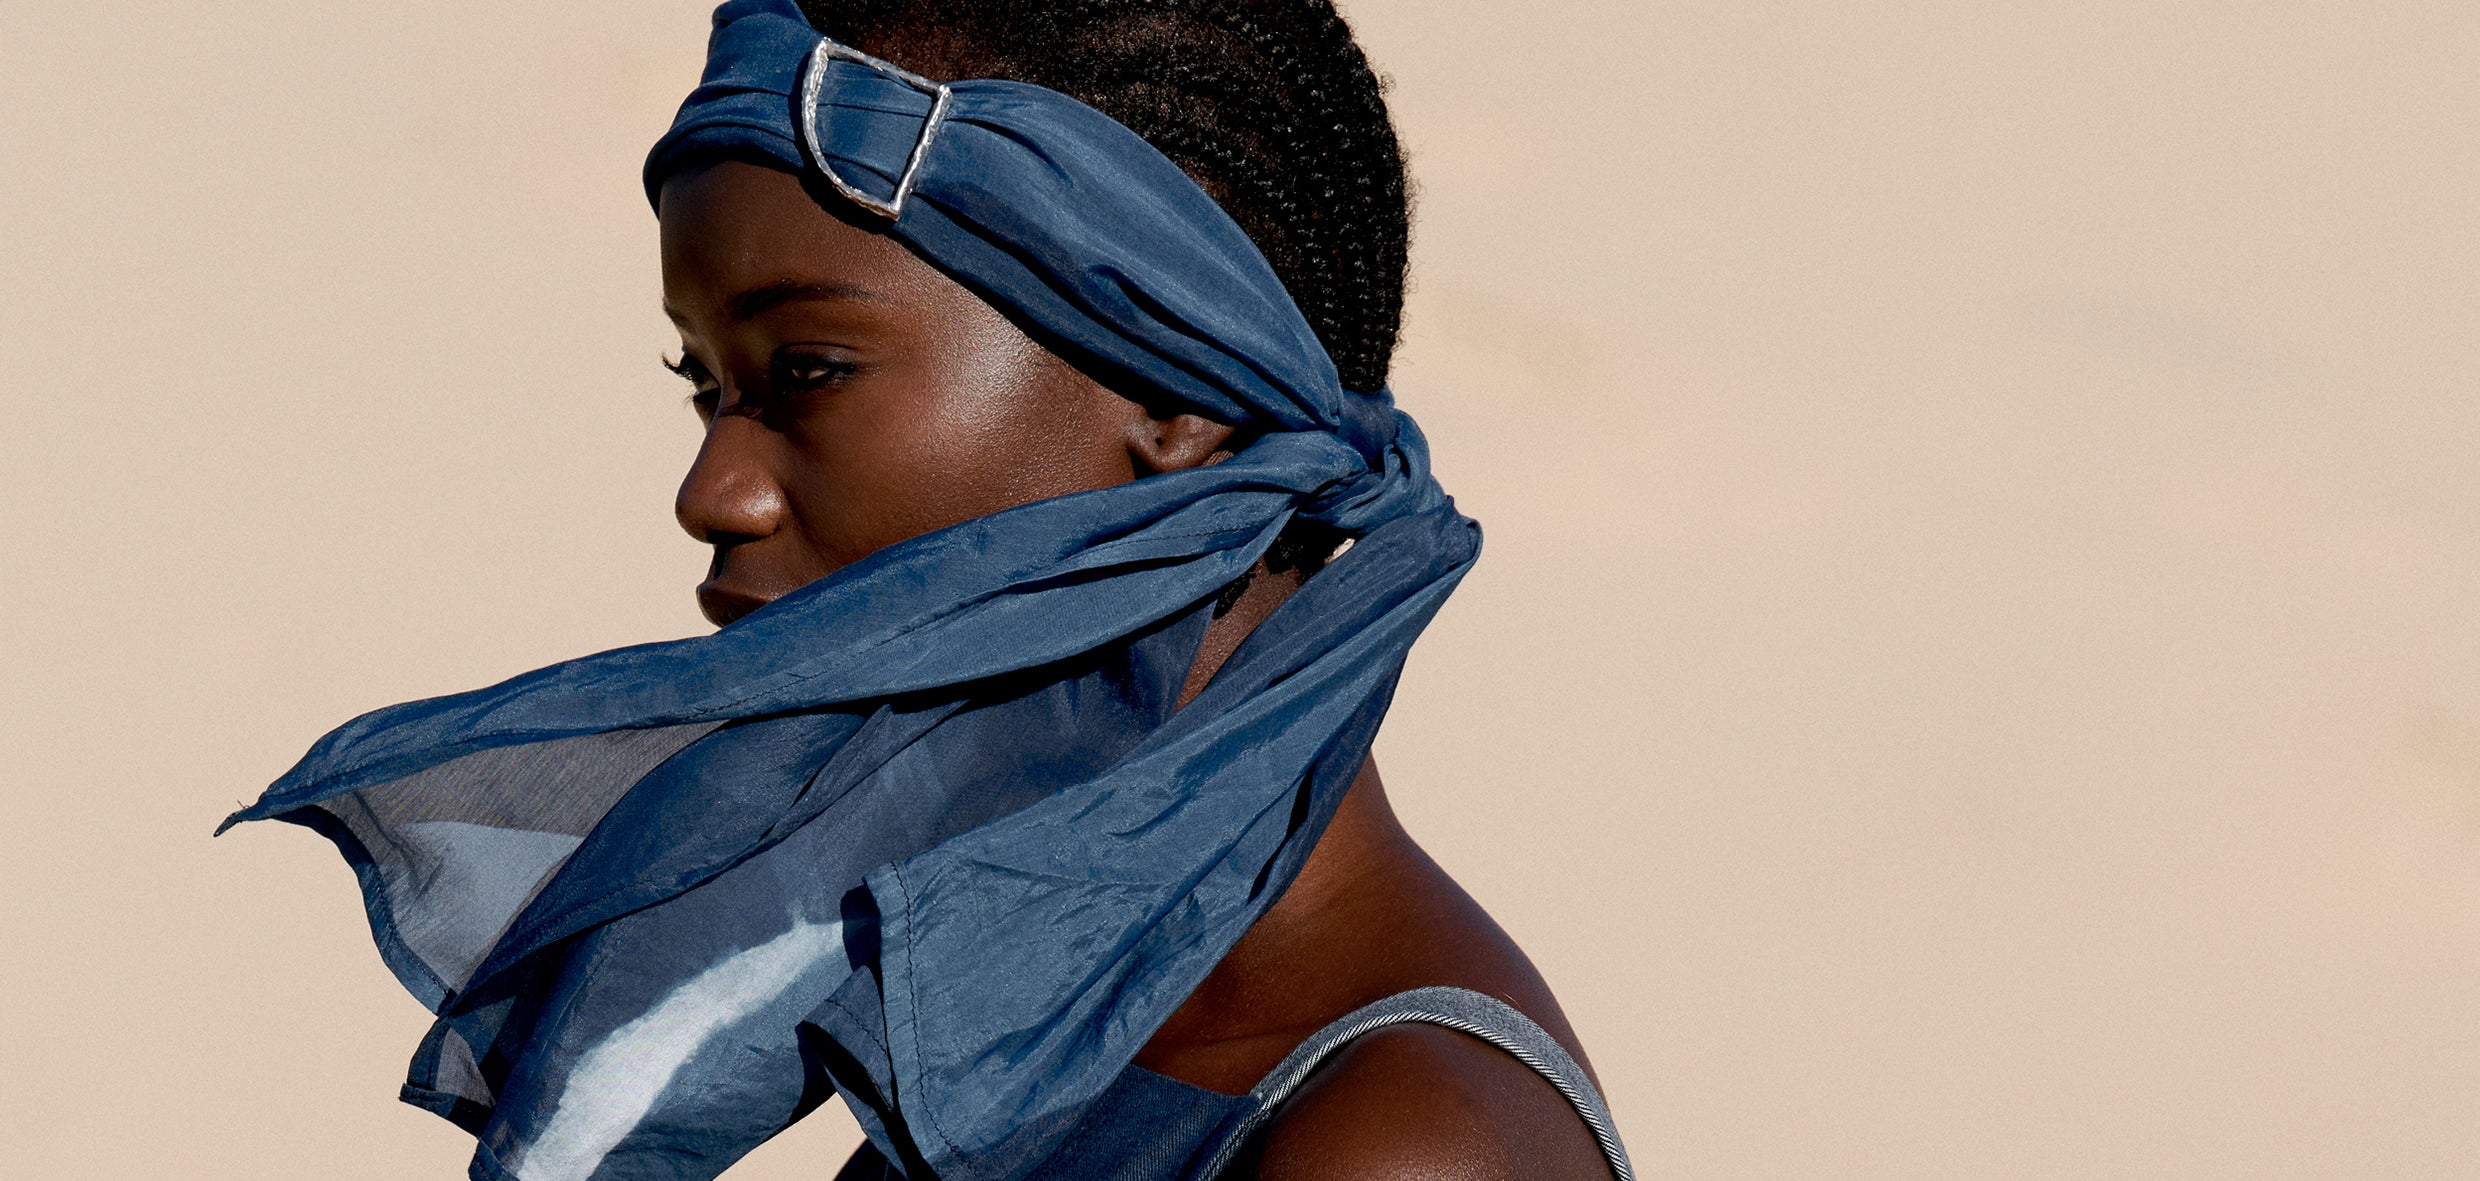 Aura Studios Flow Headscarf, naturally indigo dyed with handcrafted silver closure.